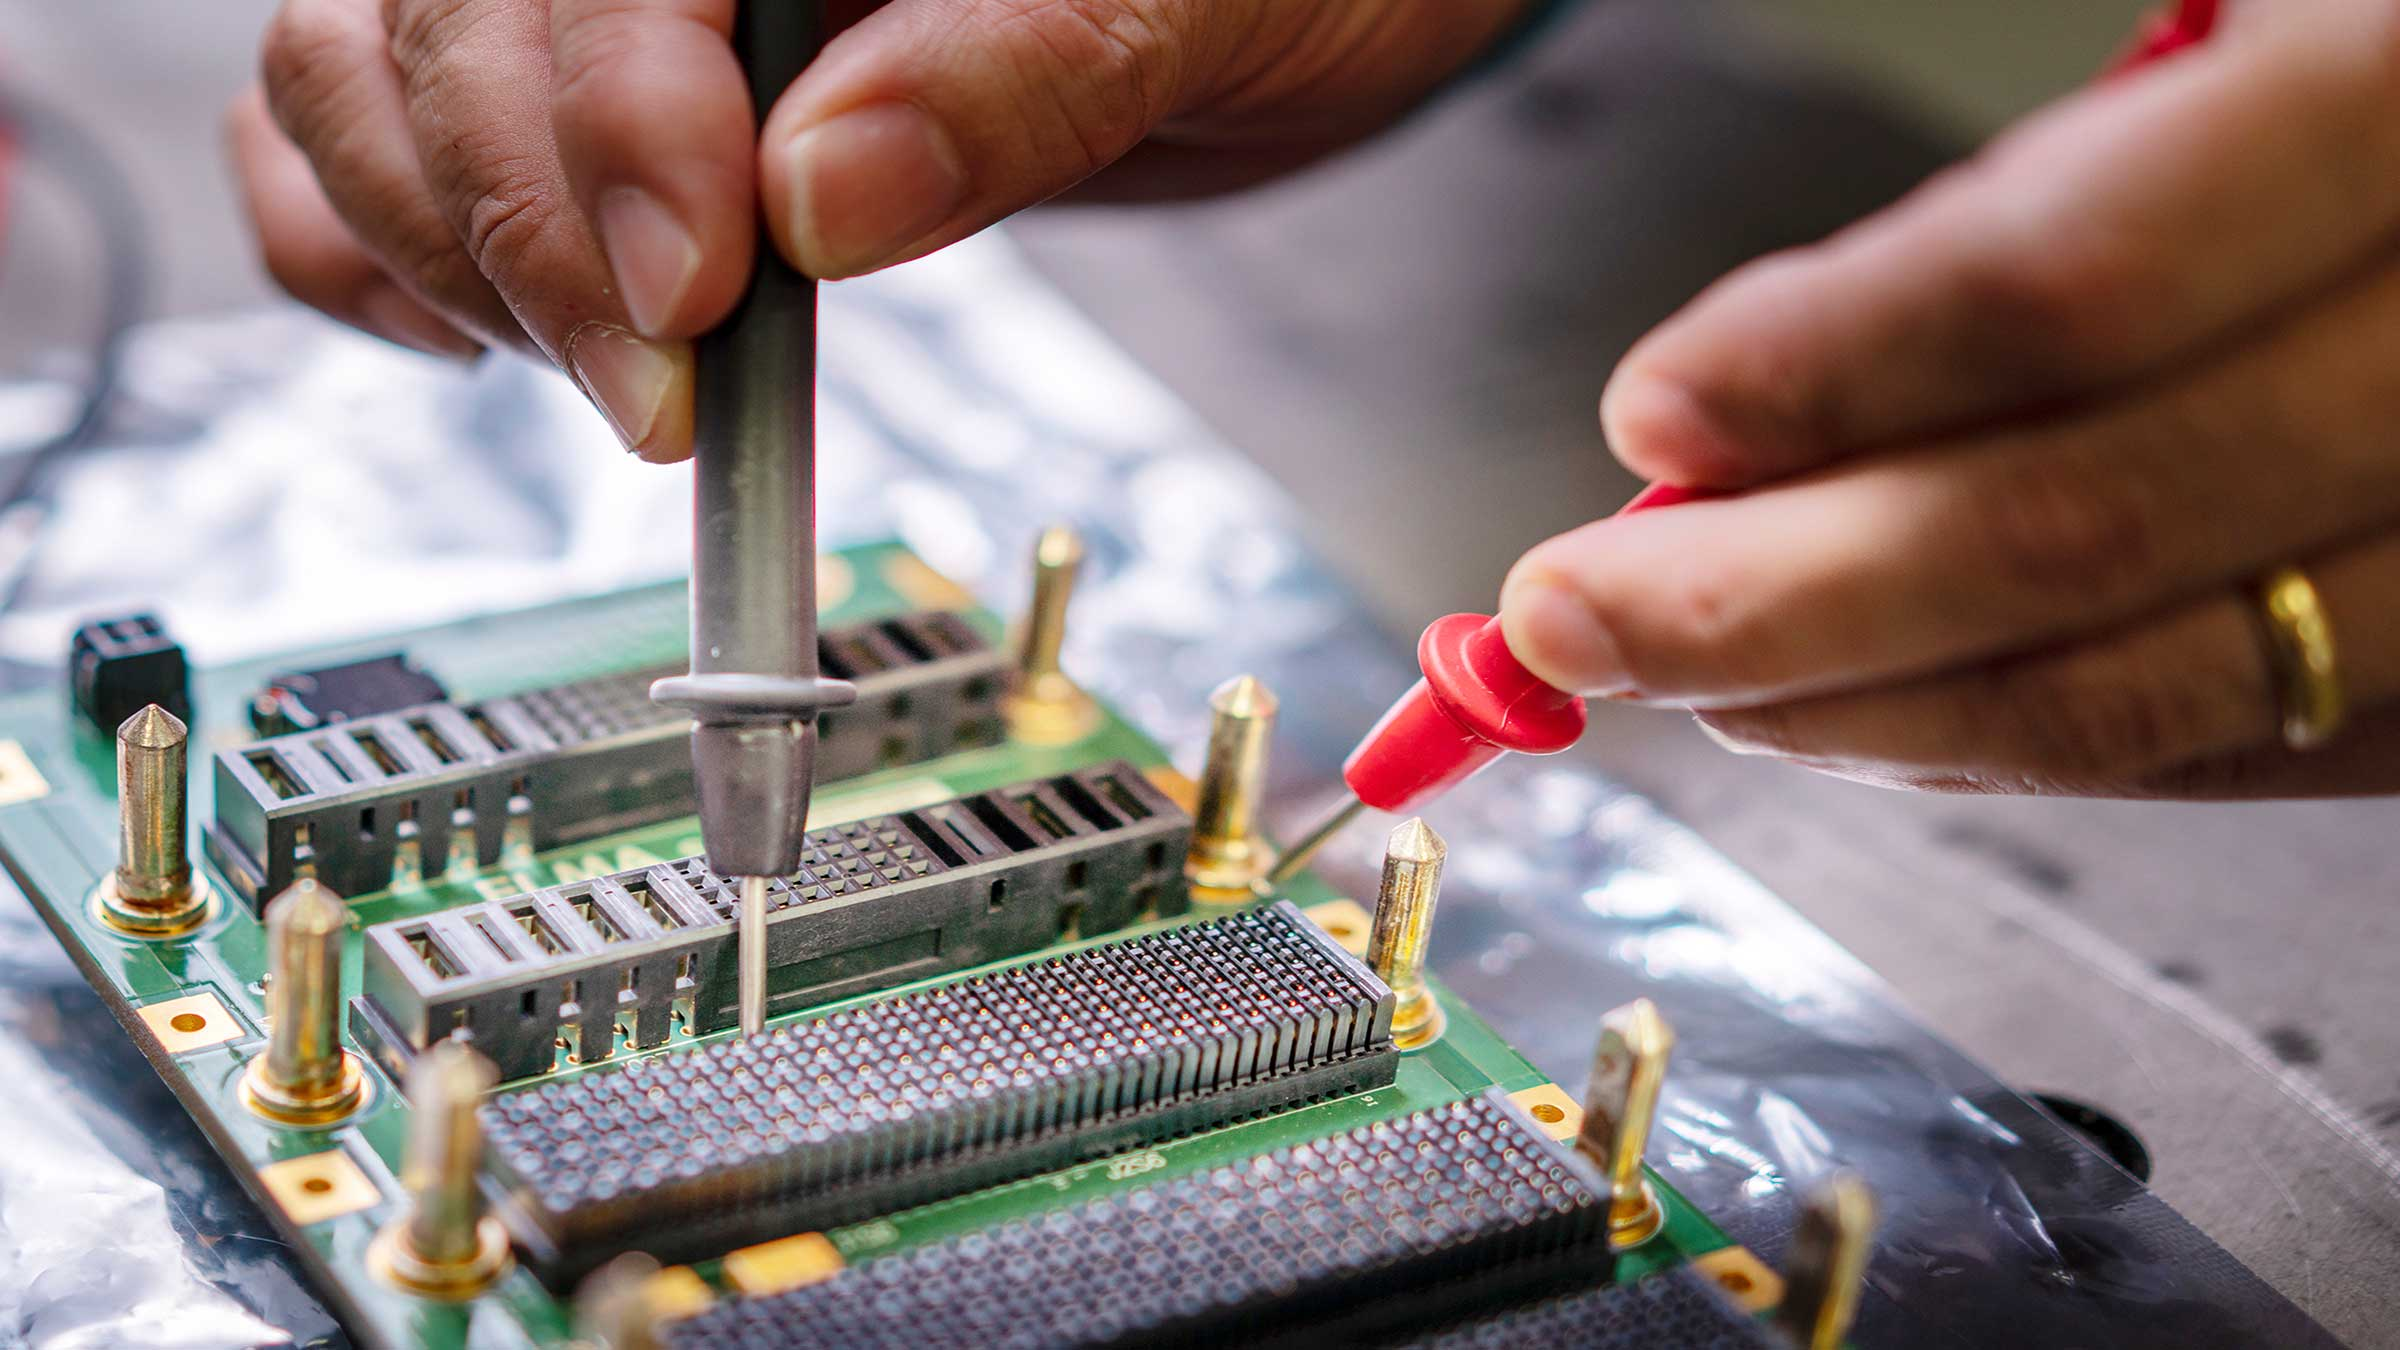 Solutions at every stage of your journey -  from embedded computing solutions to electronic components, our experts are here for you.